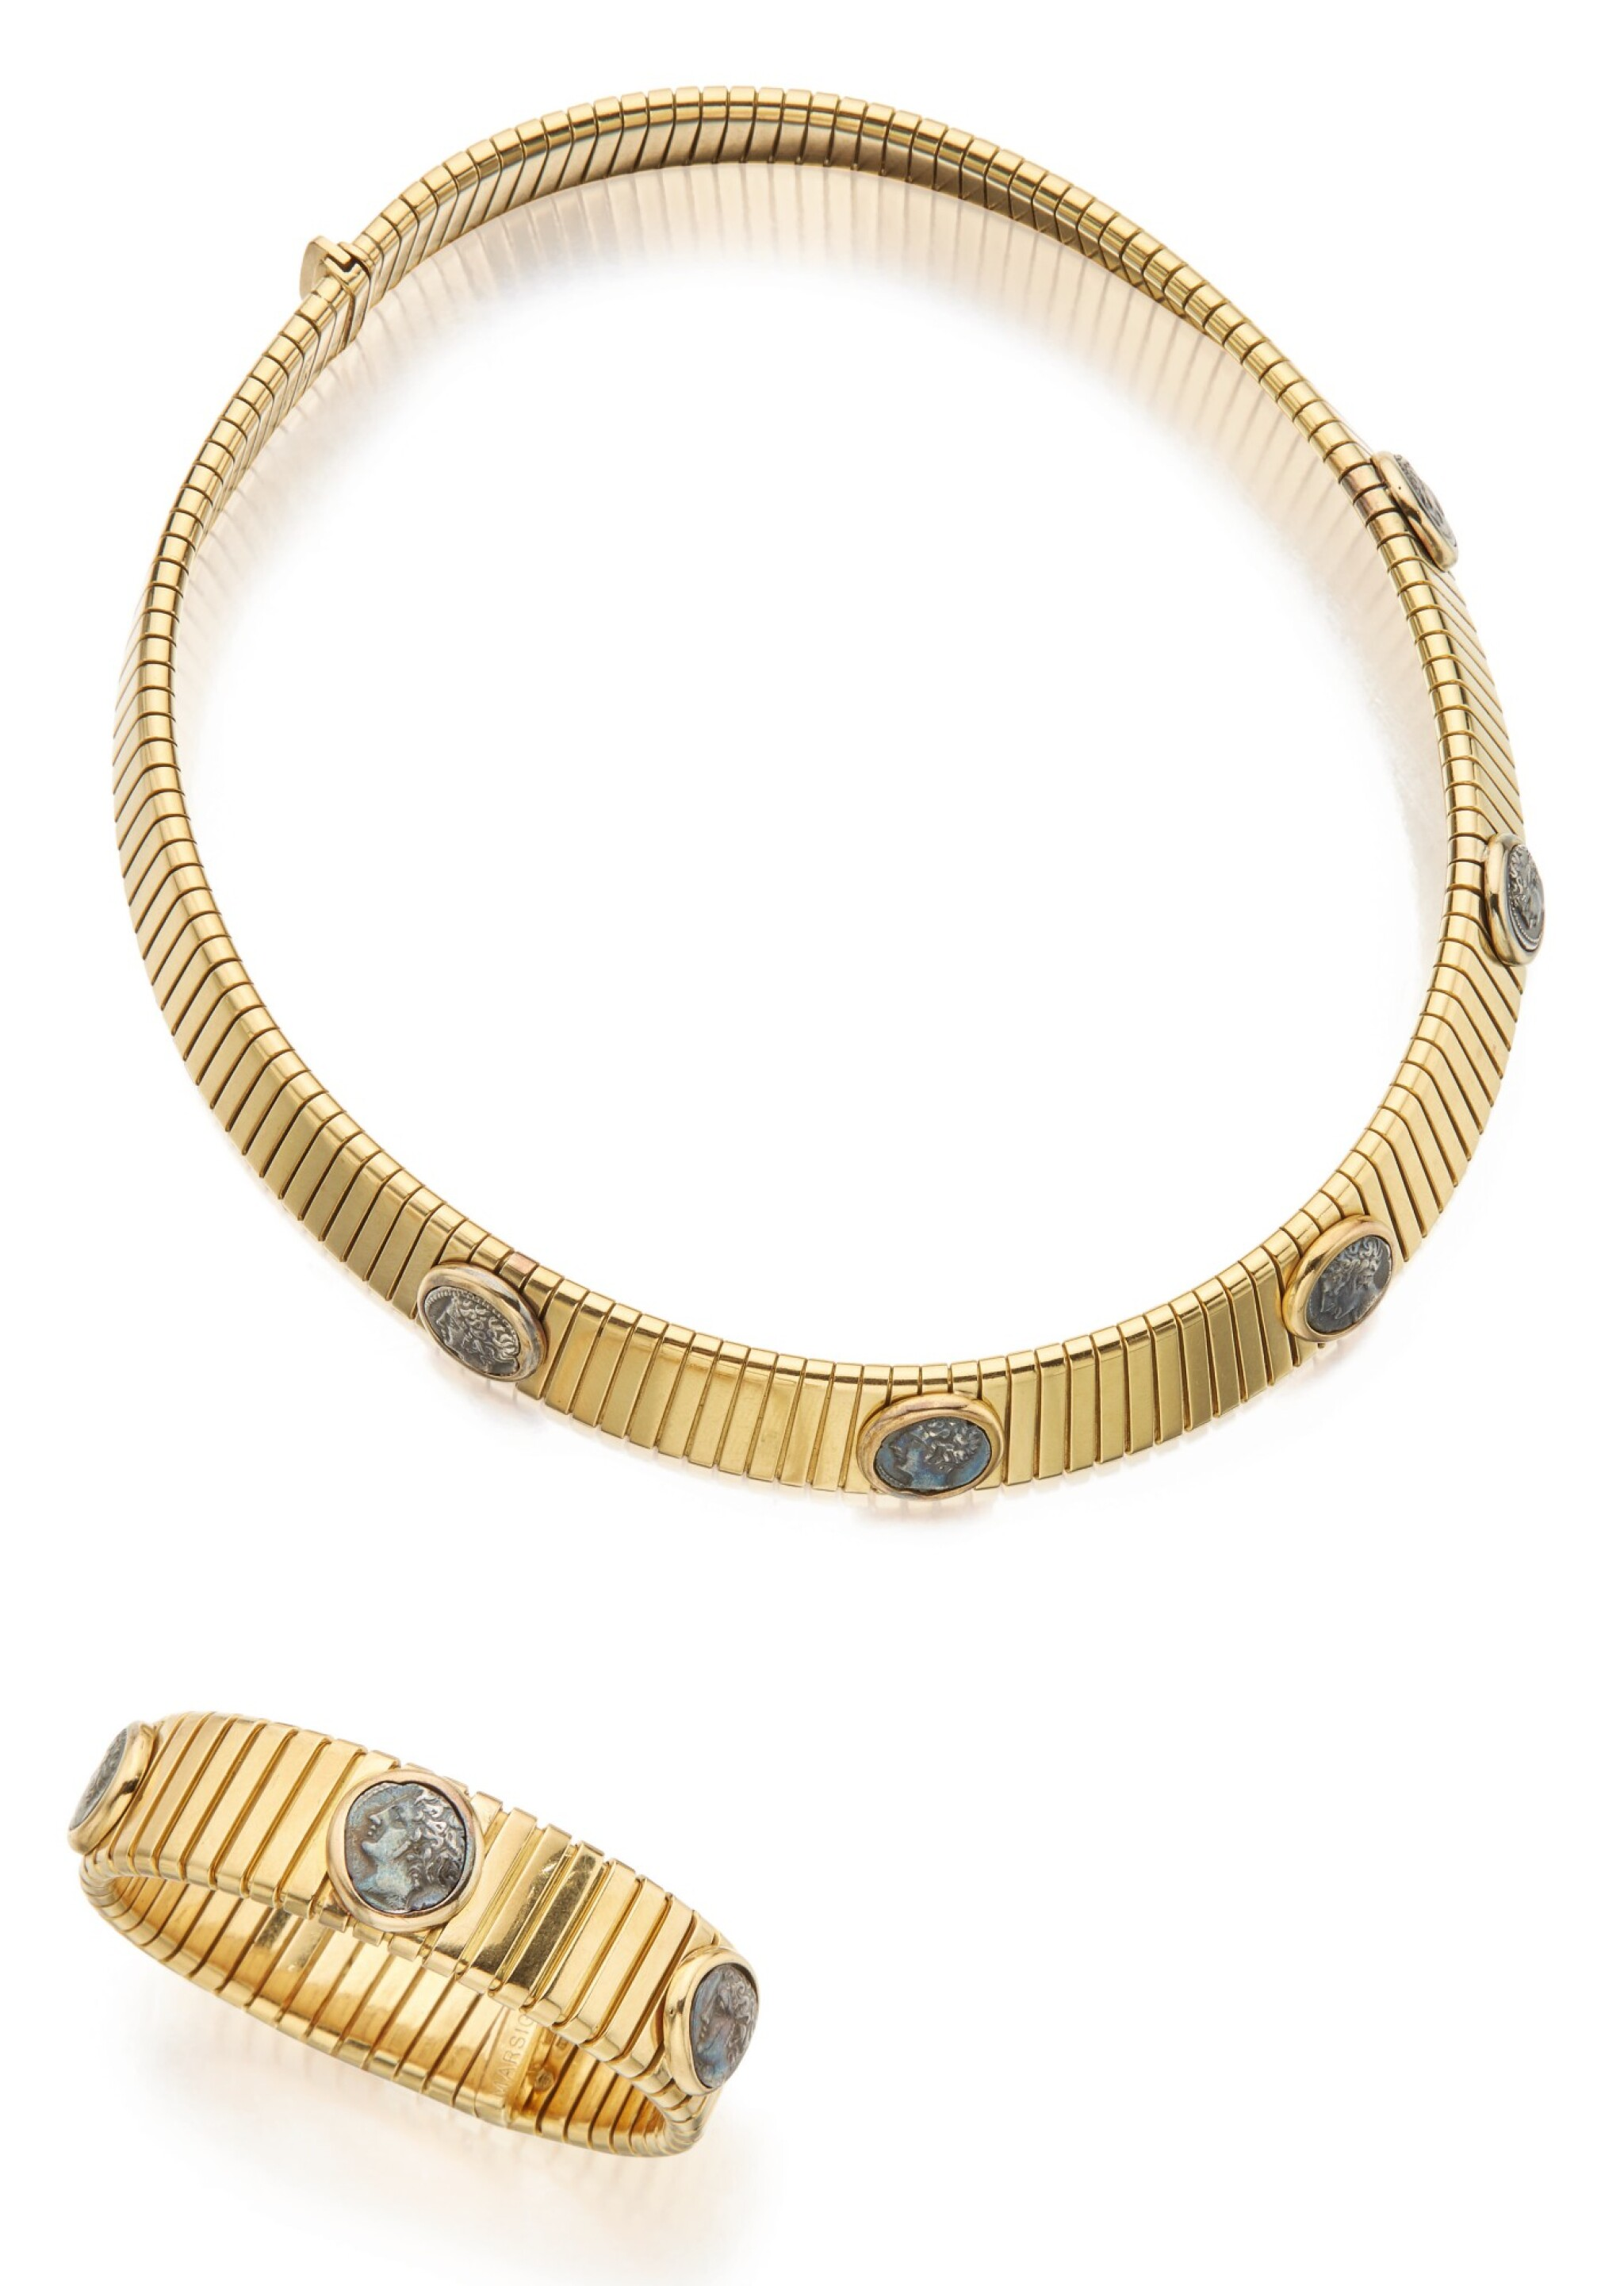 View 1 of Lot 310. GOLD AND ANCIENT COIN CHOKER-NECKLACE AND CUFF-BRACELET, BULGARI .